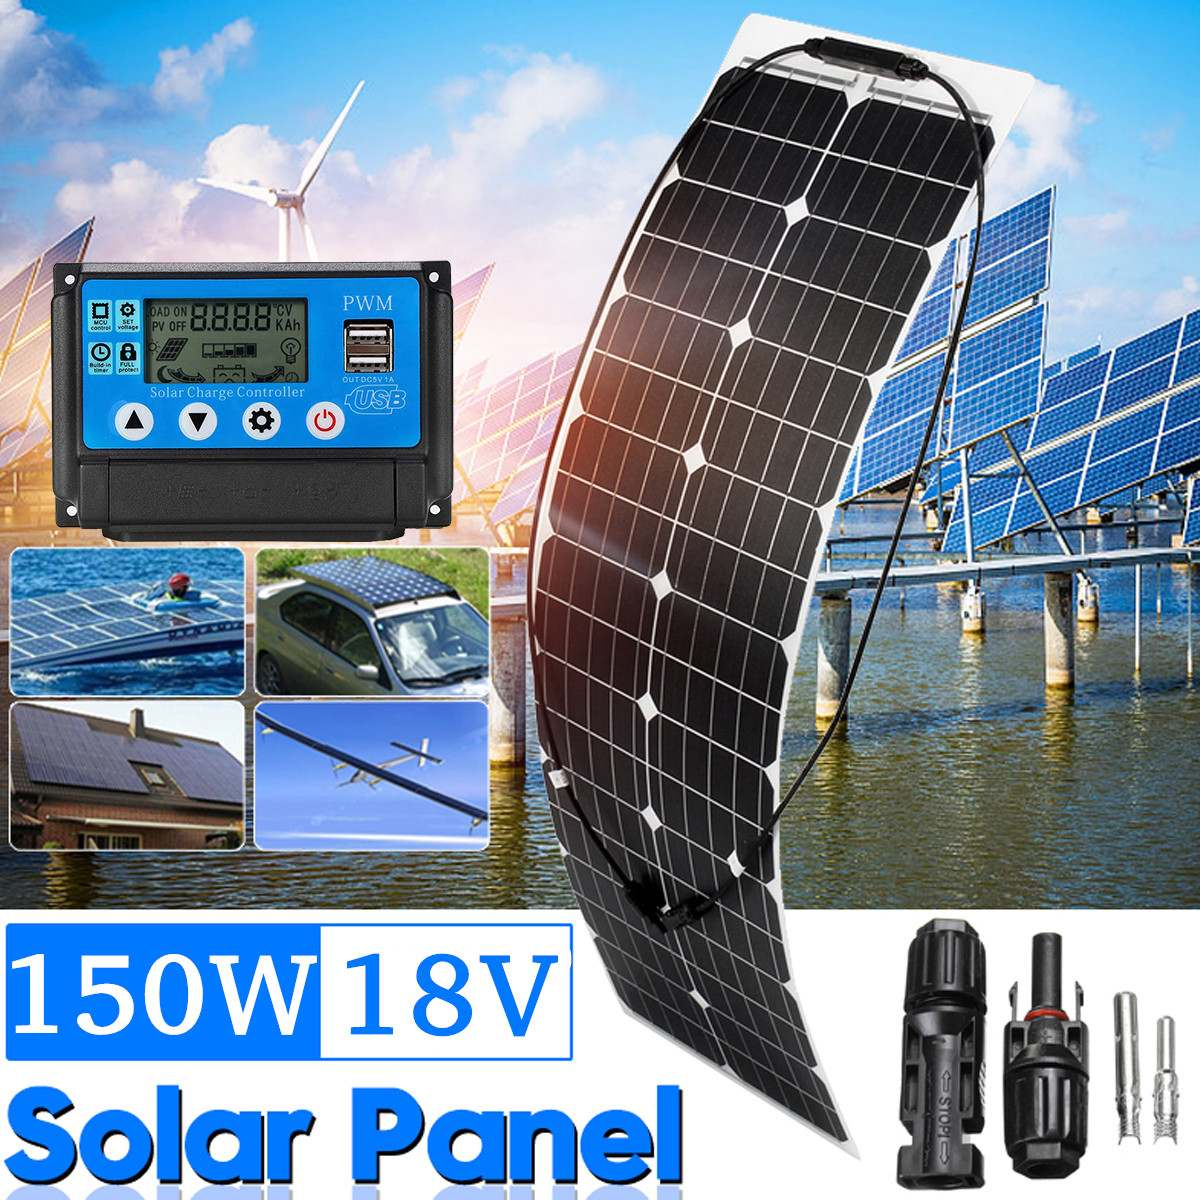 150W 18V Solar Panel Monocrystalline Solar Cell DIY Module MC4 Cable + 10/20/30/40A/50A Controller For Outdoor Battery Charger